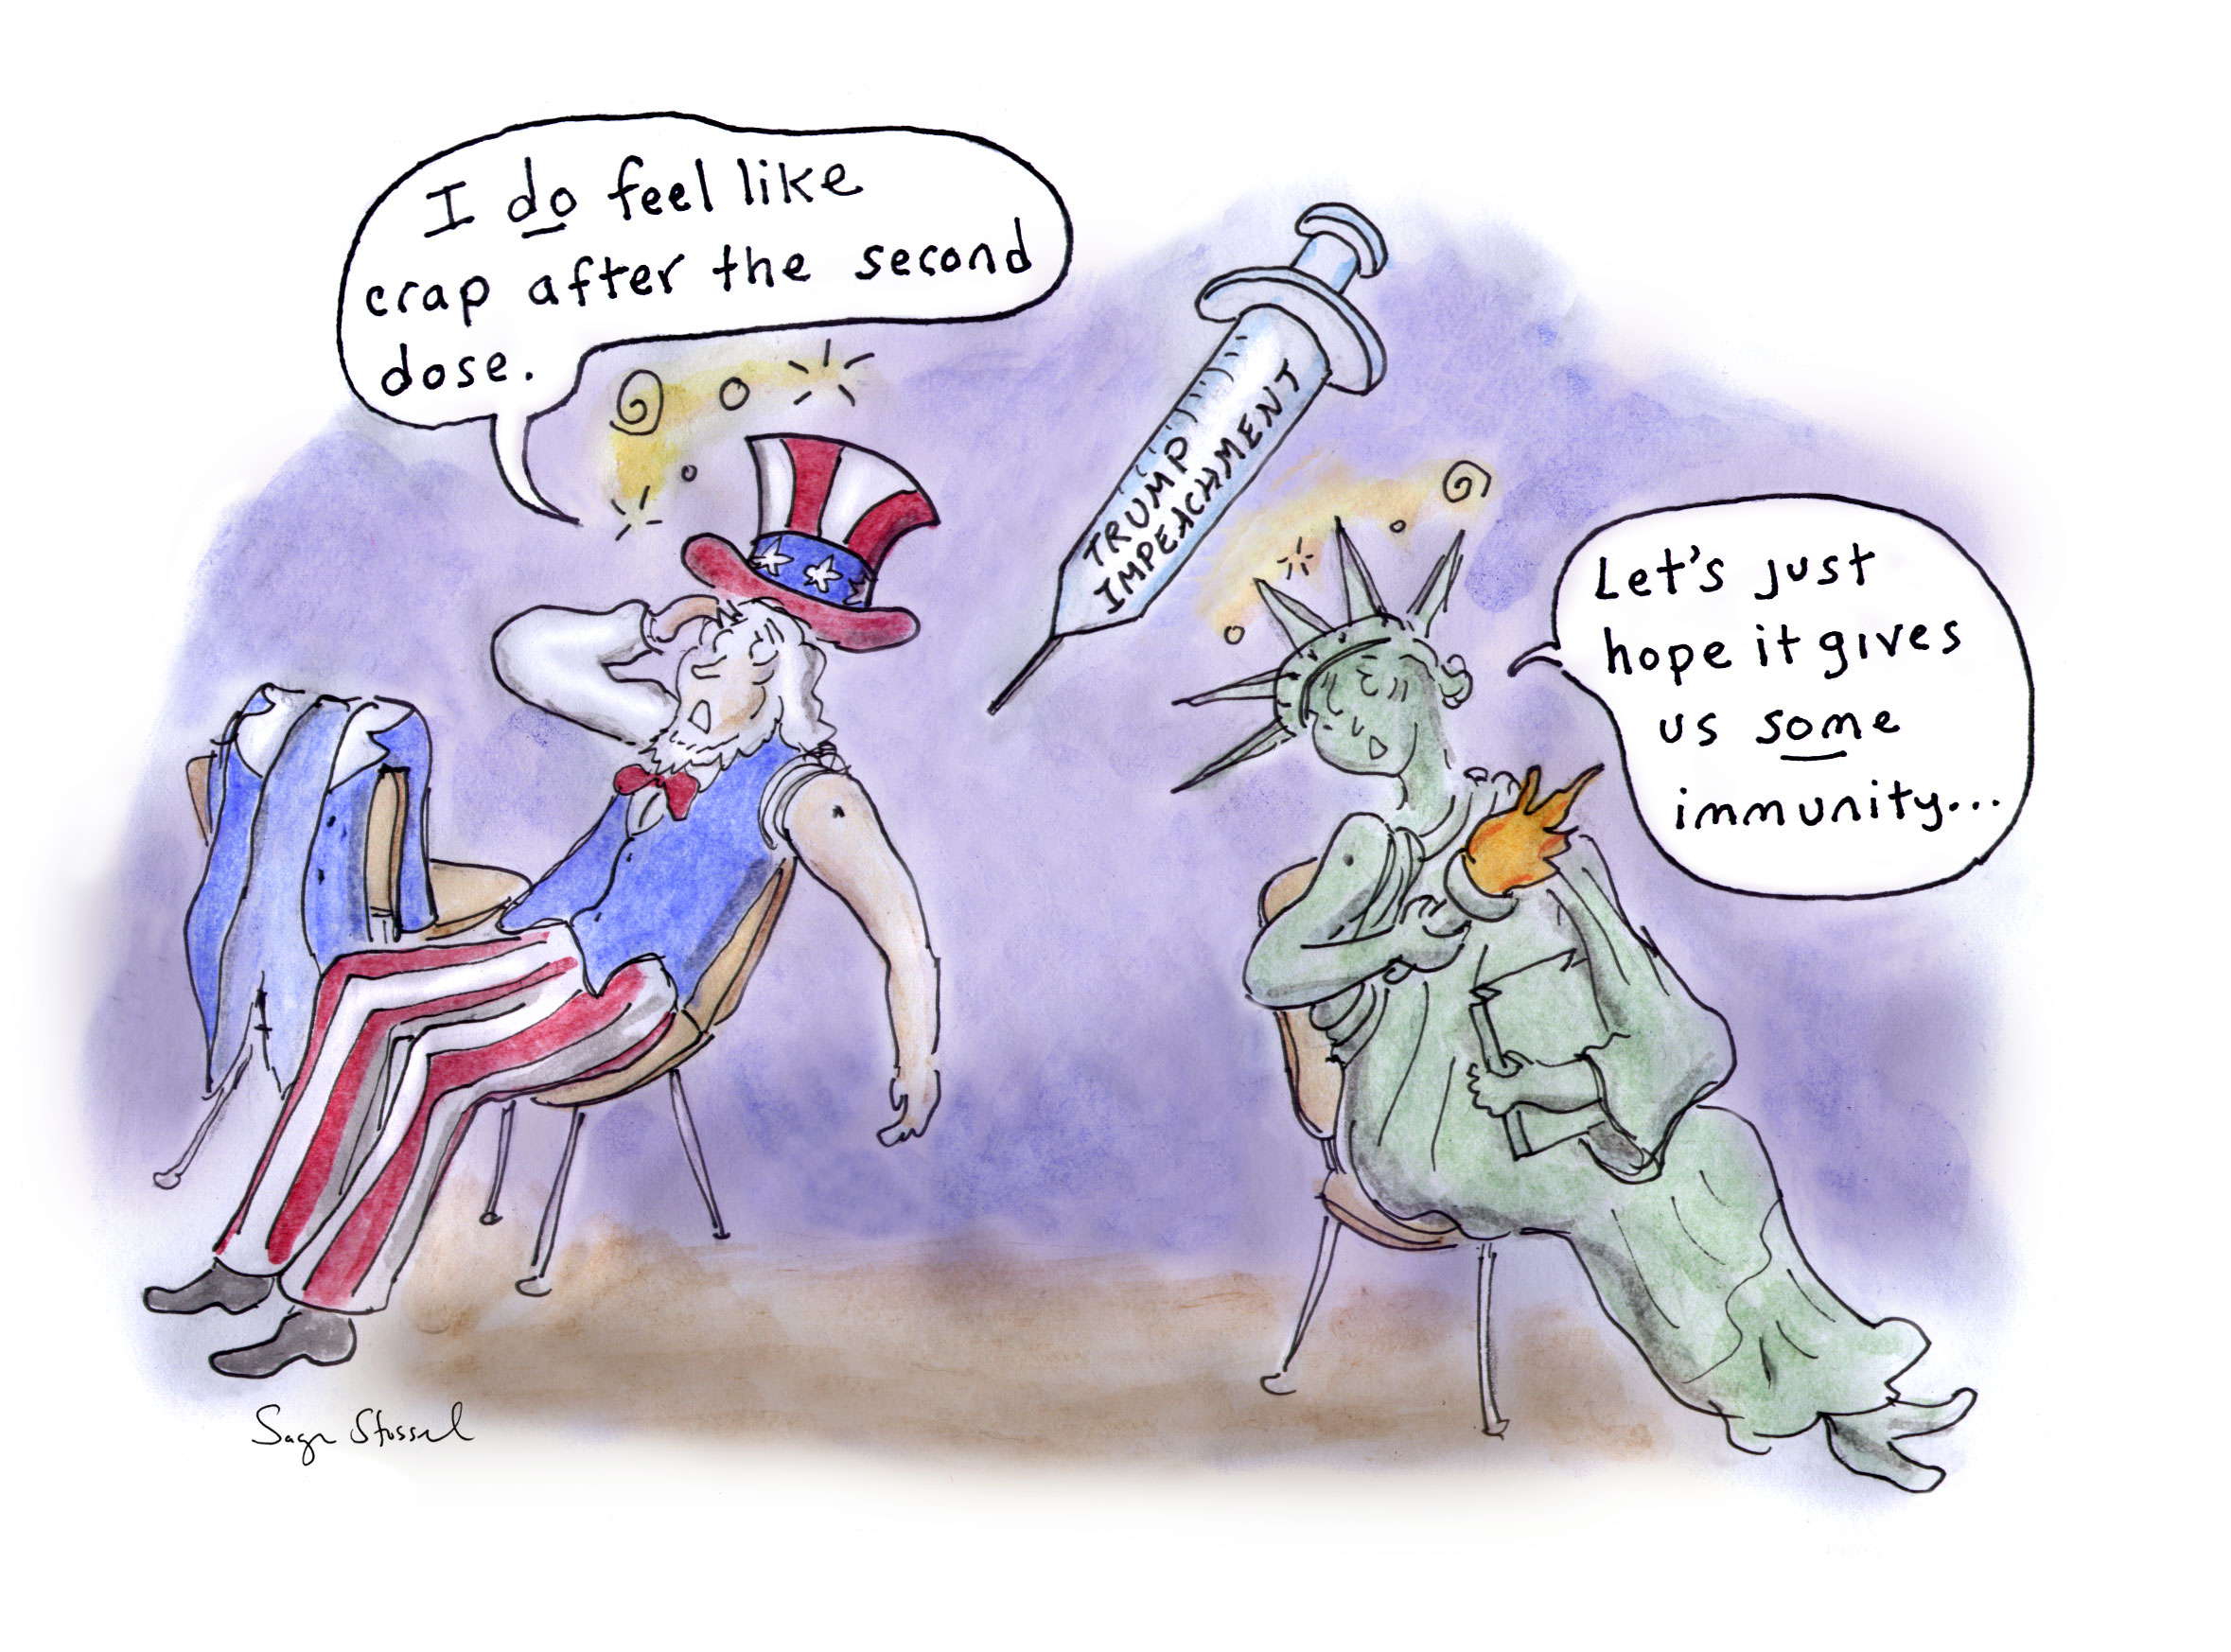 raskin, house impeachment managers, impeachment, republicans, democracy, us government, trump, q, insurrection, vaccine, doses, virus, covid, side effects, cartoon, sage stossel